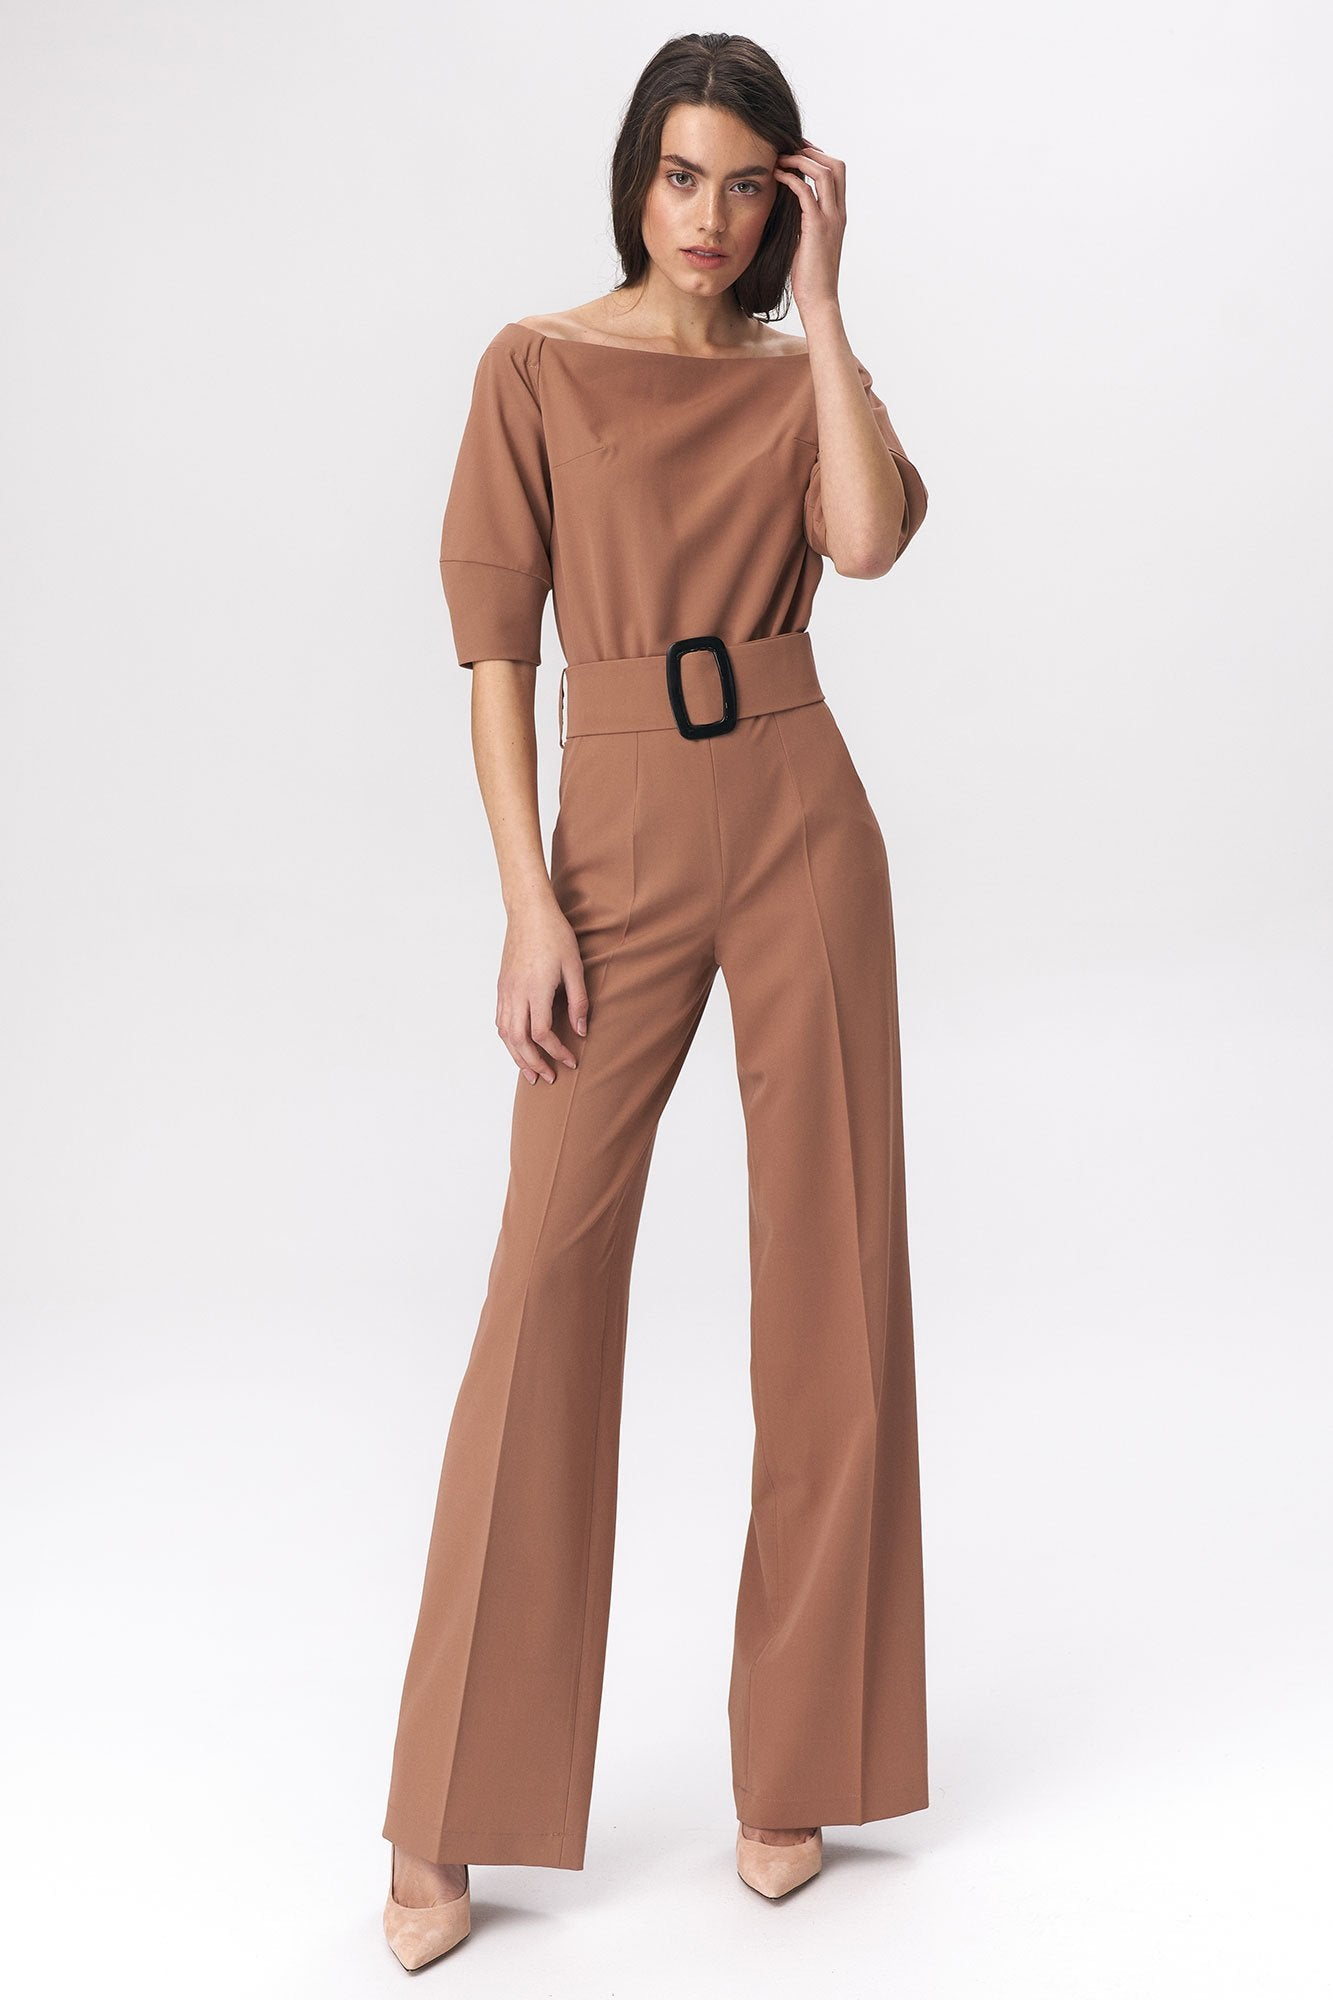 Boat Neck Jumpsuit - LK's Boutique